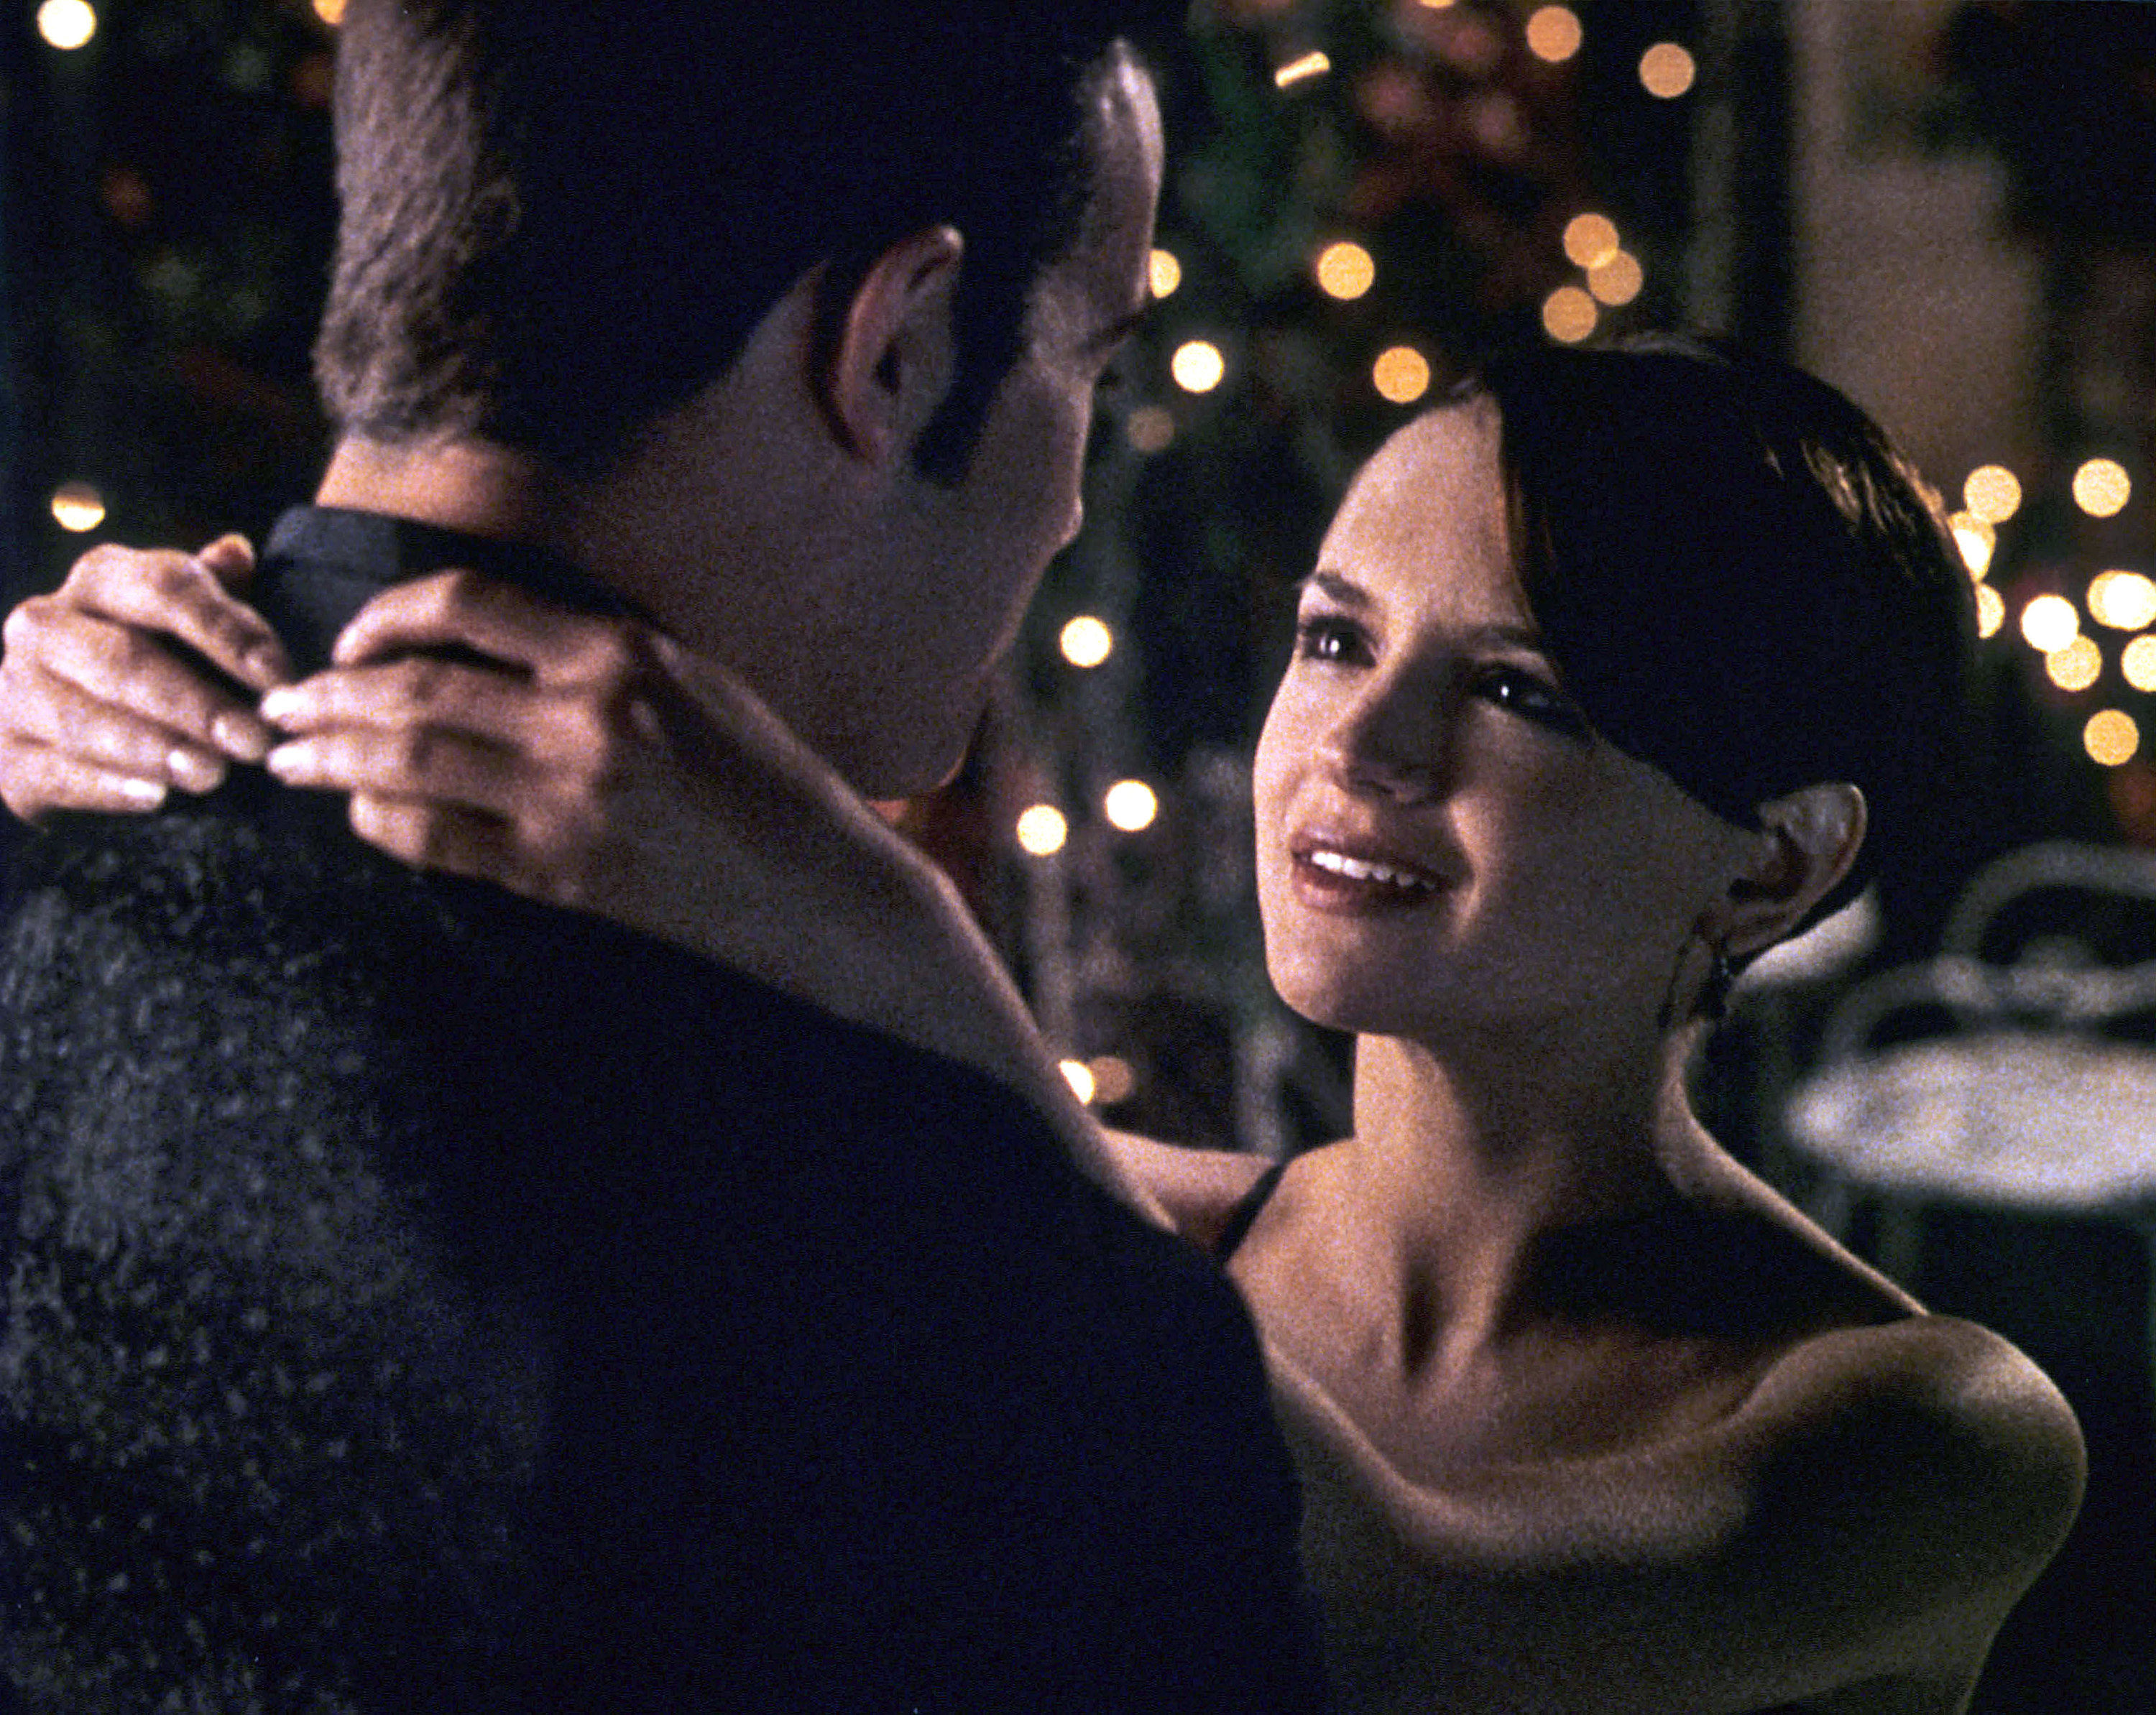 A screenshot from She's All That where Freddie andRachael dance together with their arms around each other